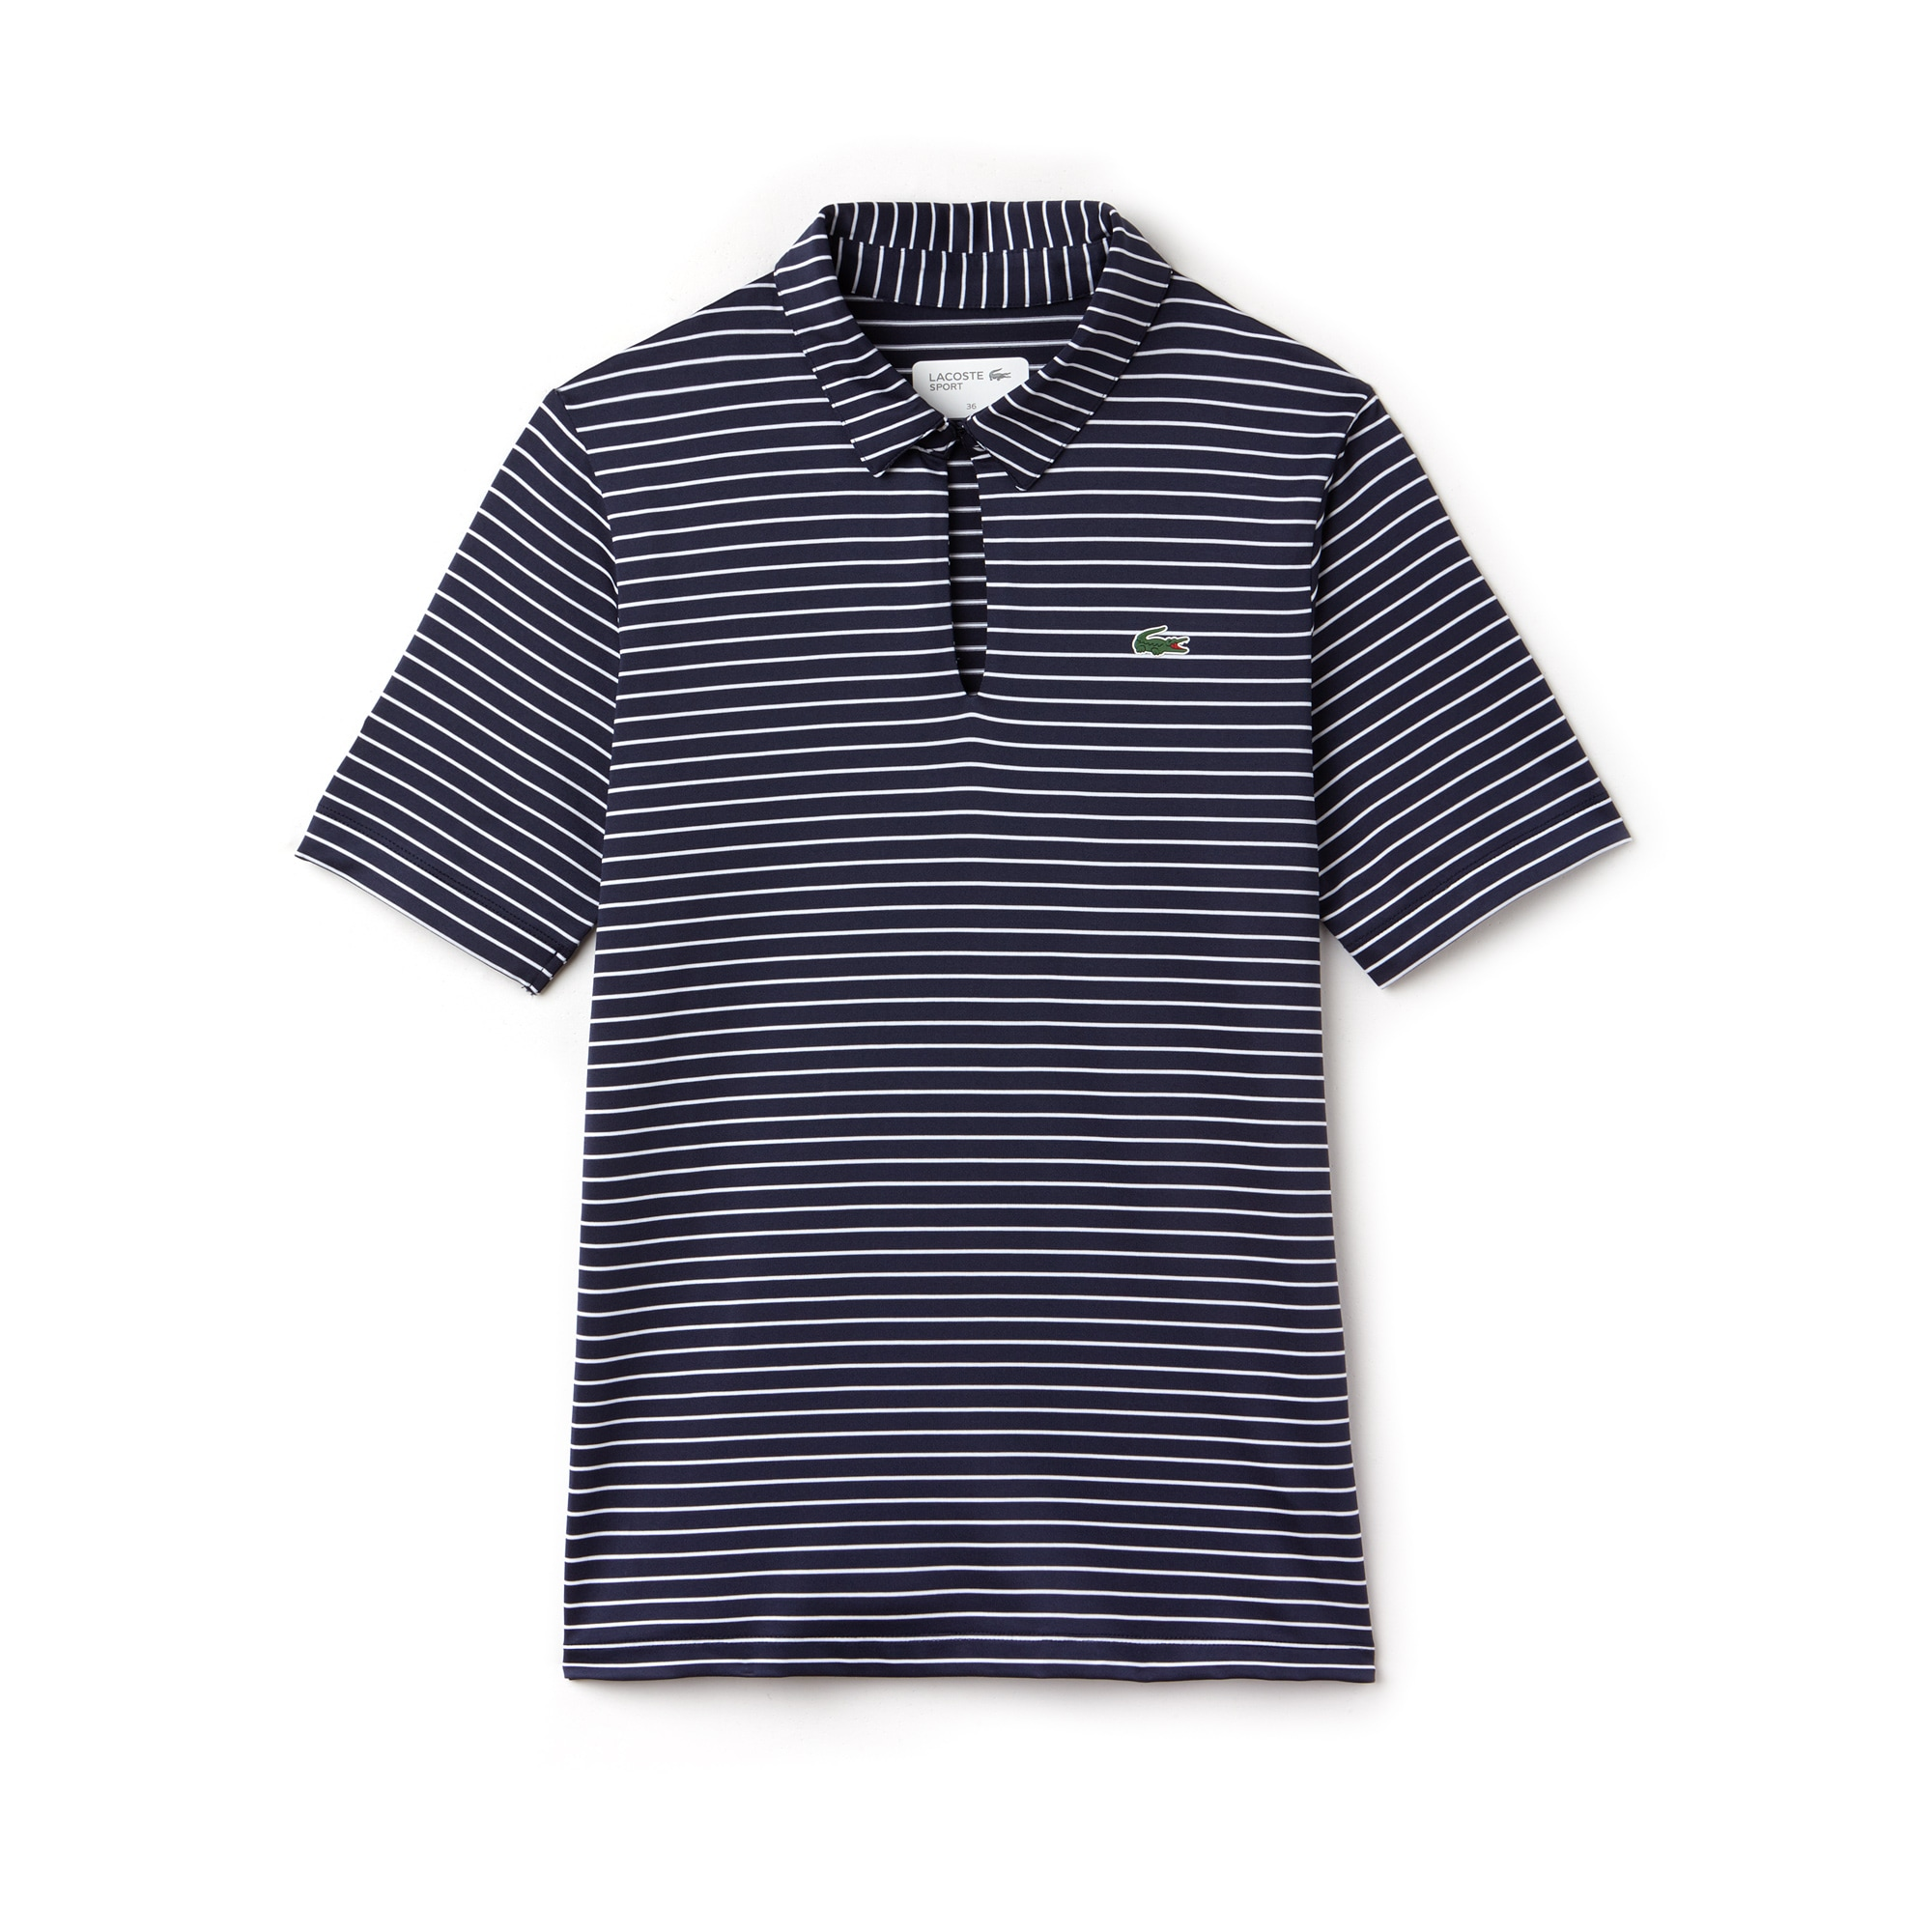 Women's Lacoste SPORT Ryder Cup Edition Striped Stretch Jersey Golf Polo Shirt